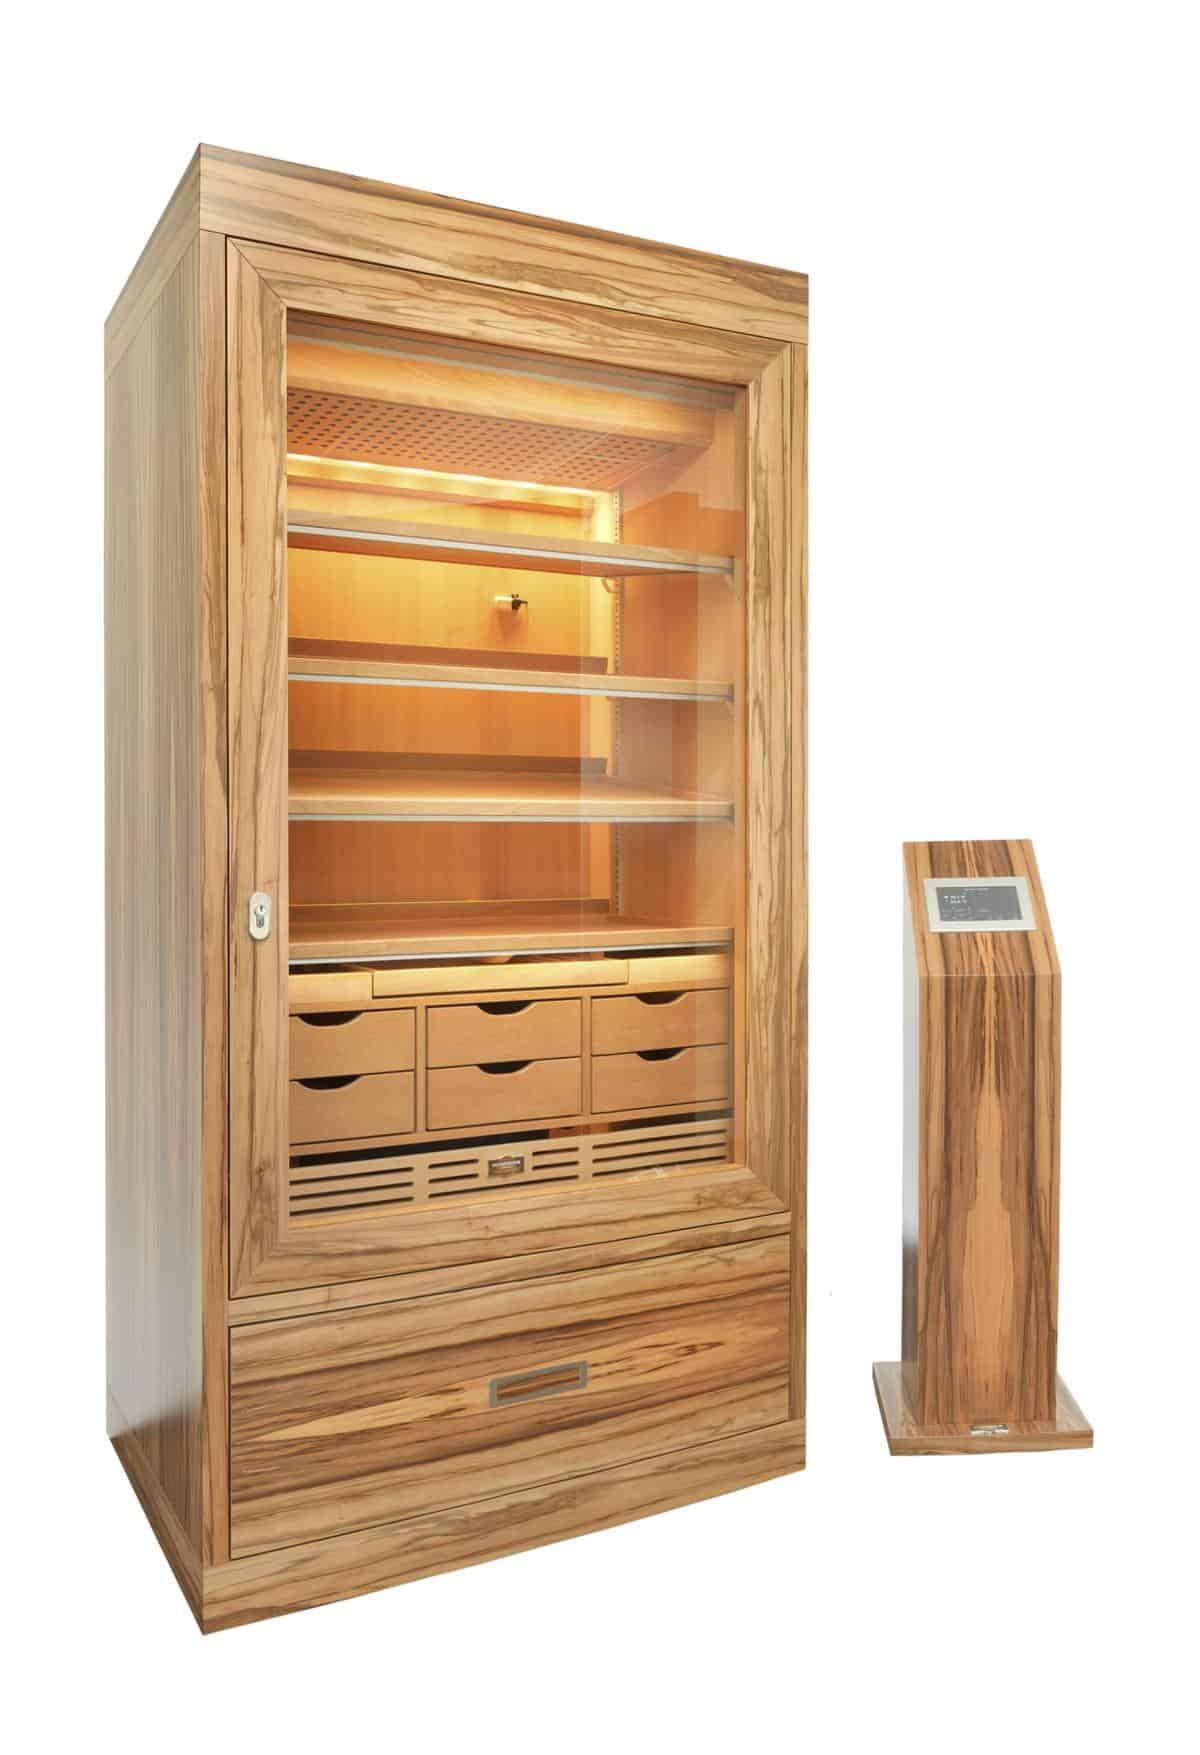 Cabinet Humidor Number One Satin Walnut » GERBER Humidors